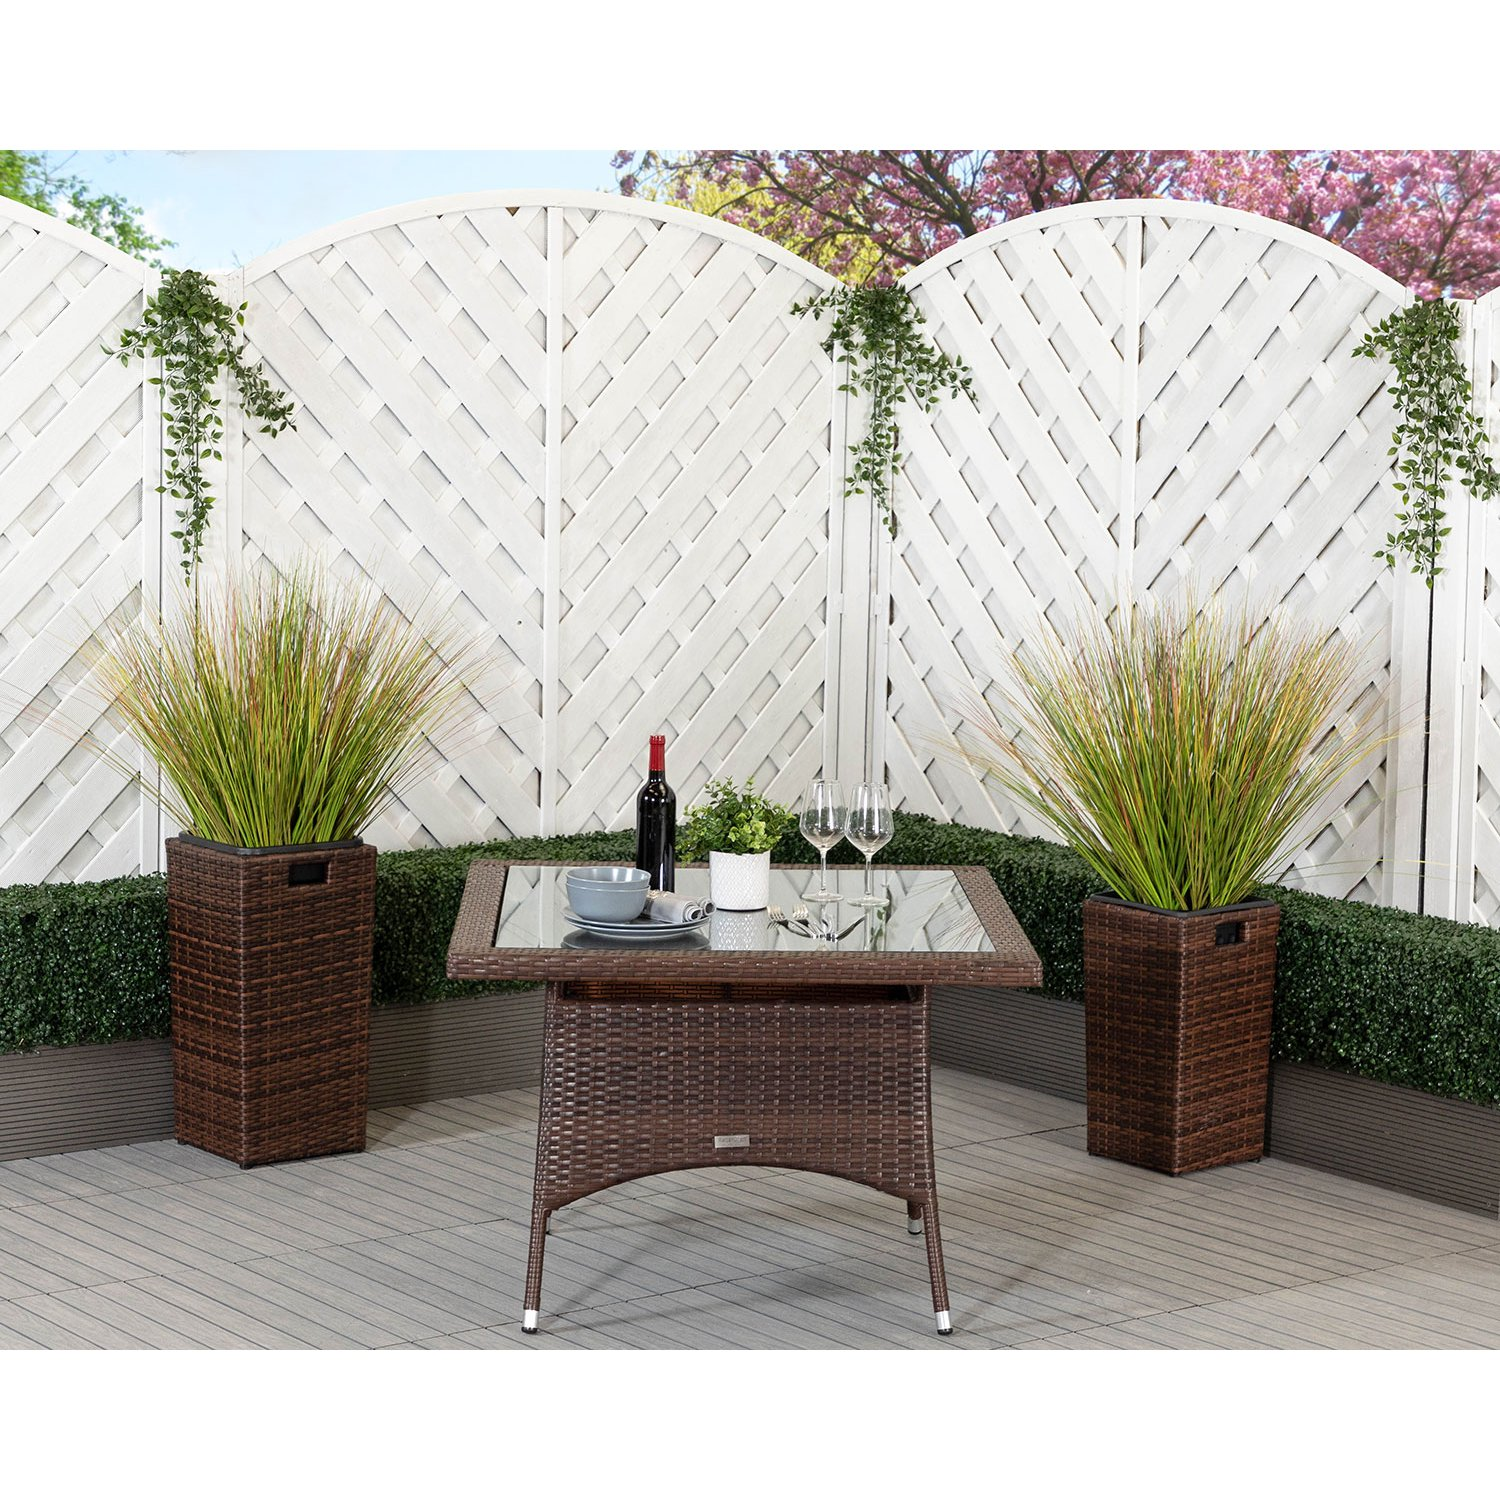 image-Square Rattan Garden Dining Table in Chocolate